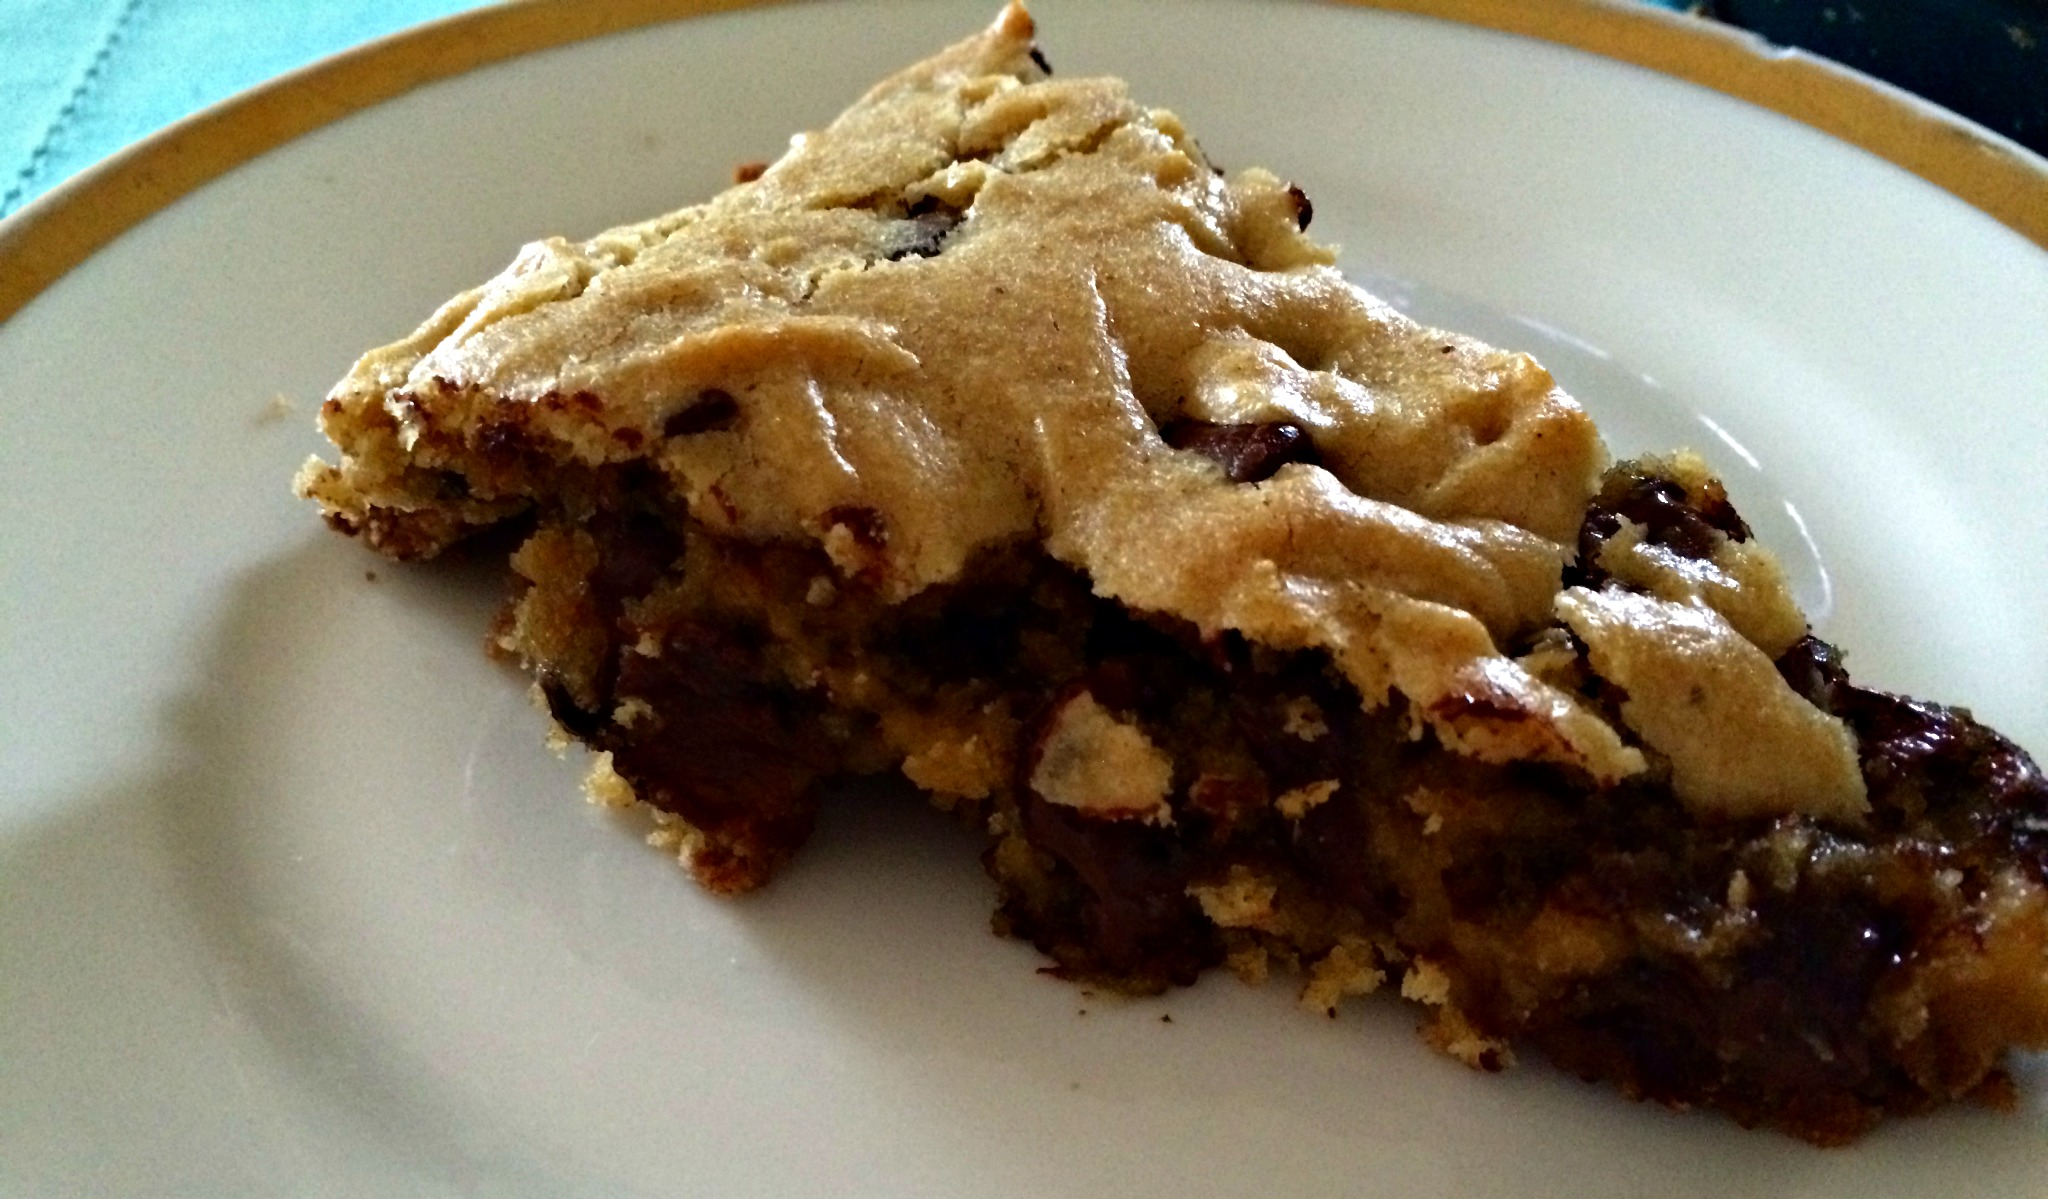 Peanut Butter Chocolate Chip Pie #SundaySupper - Sweet Mornings